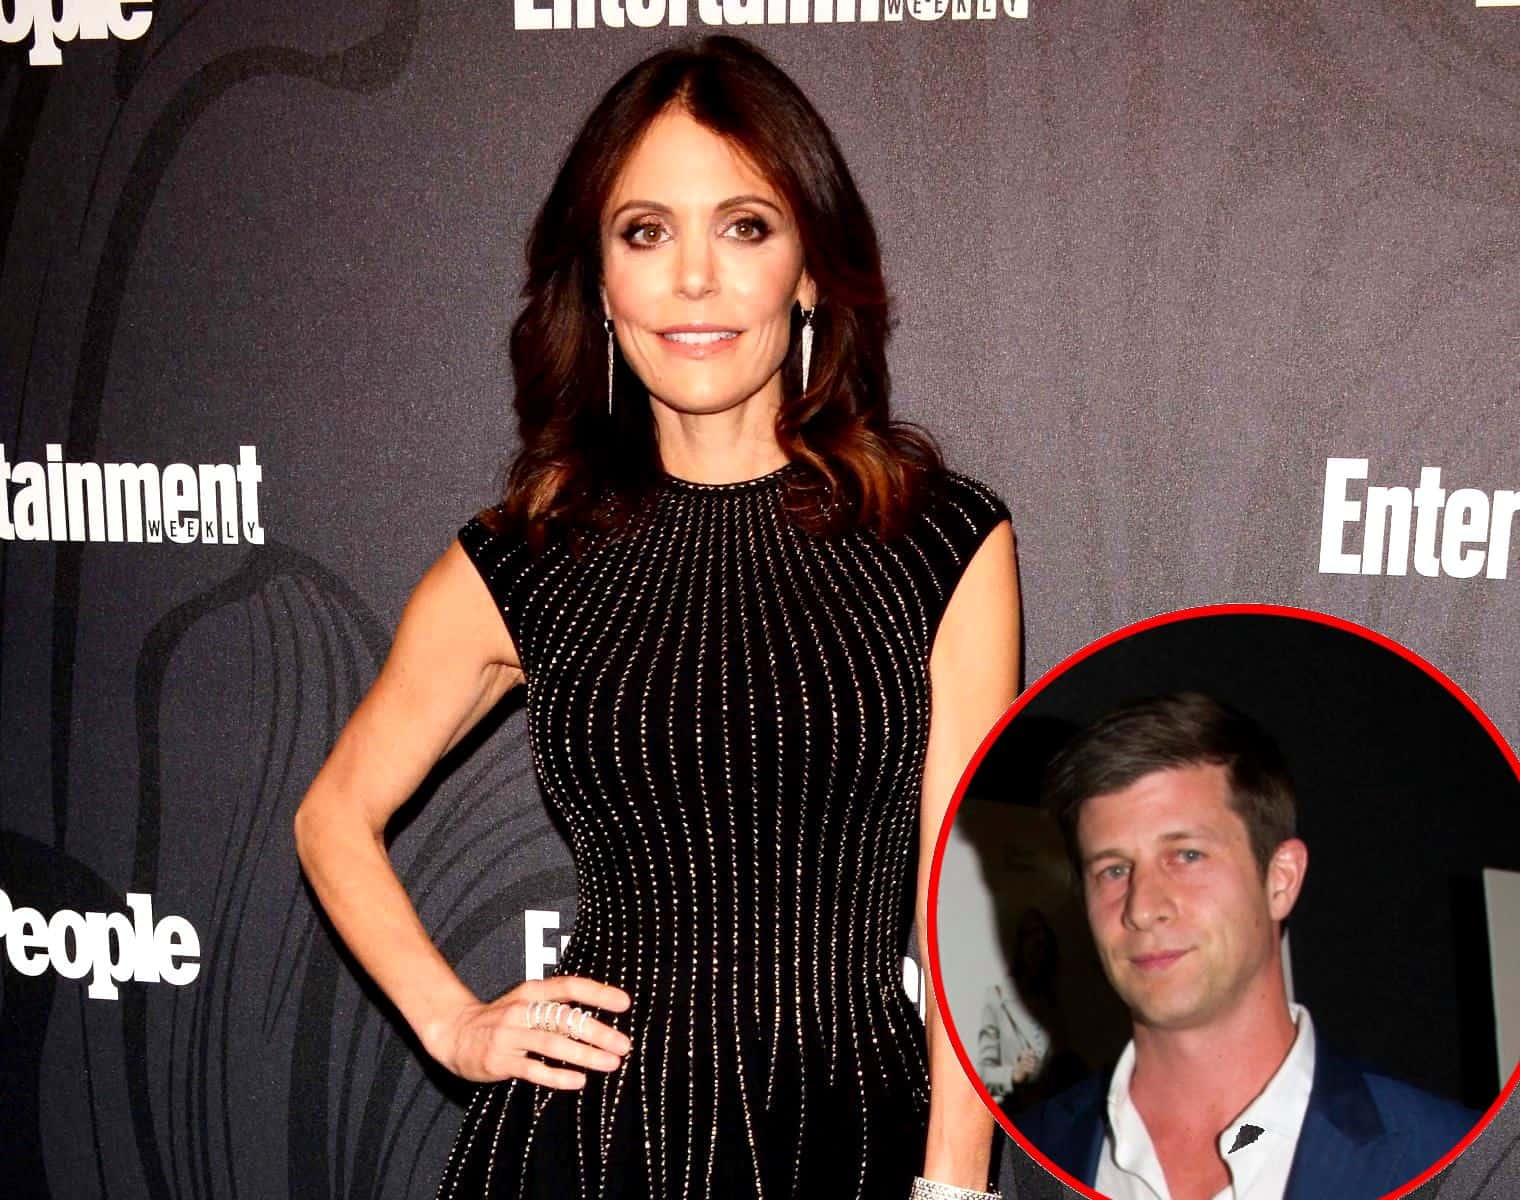 RHONY Star Bethenny Frankel Reveals New Boyfriend Paul Bernon Saved Her Life After Near-Death